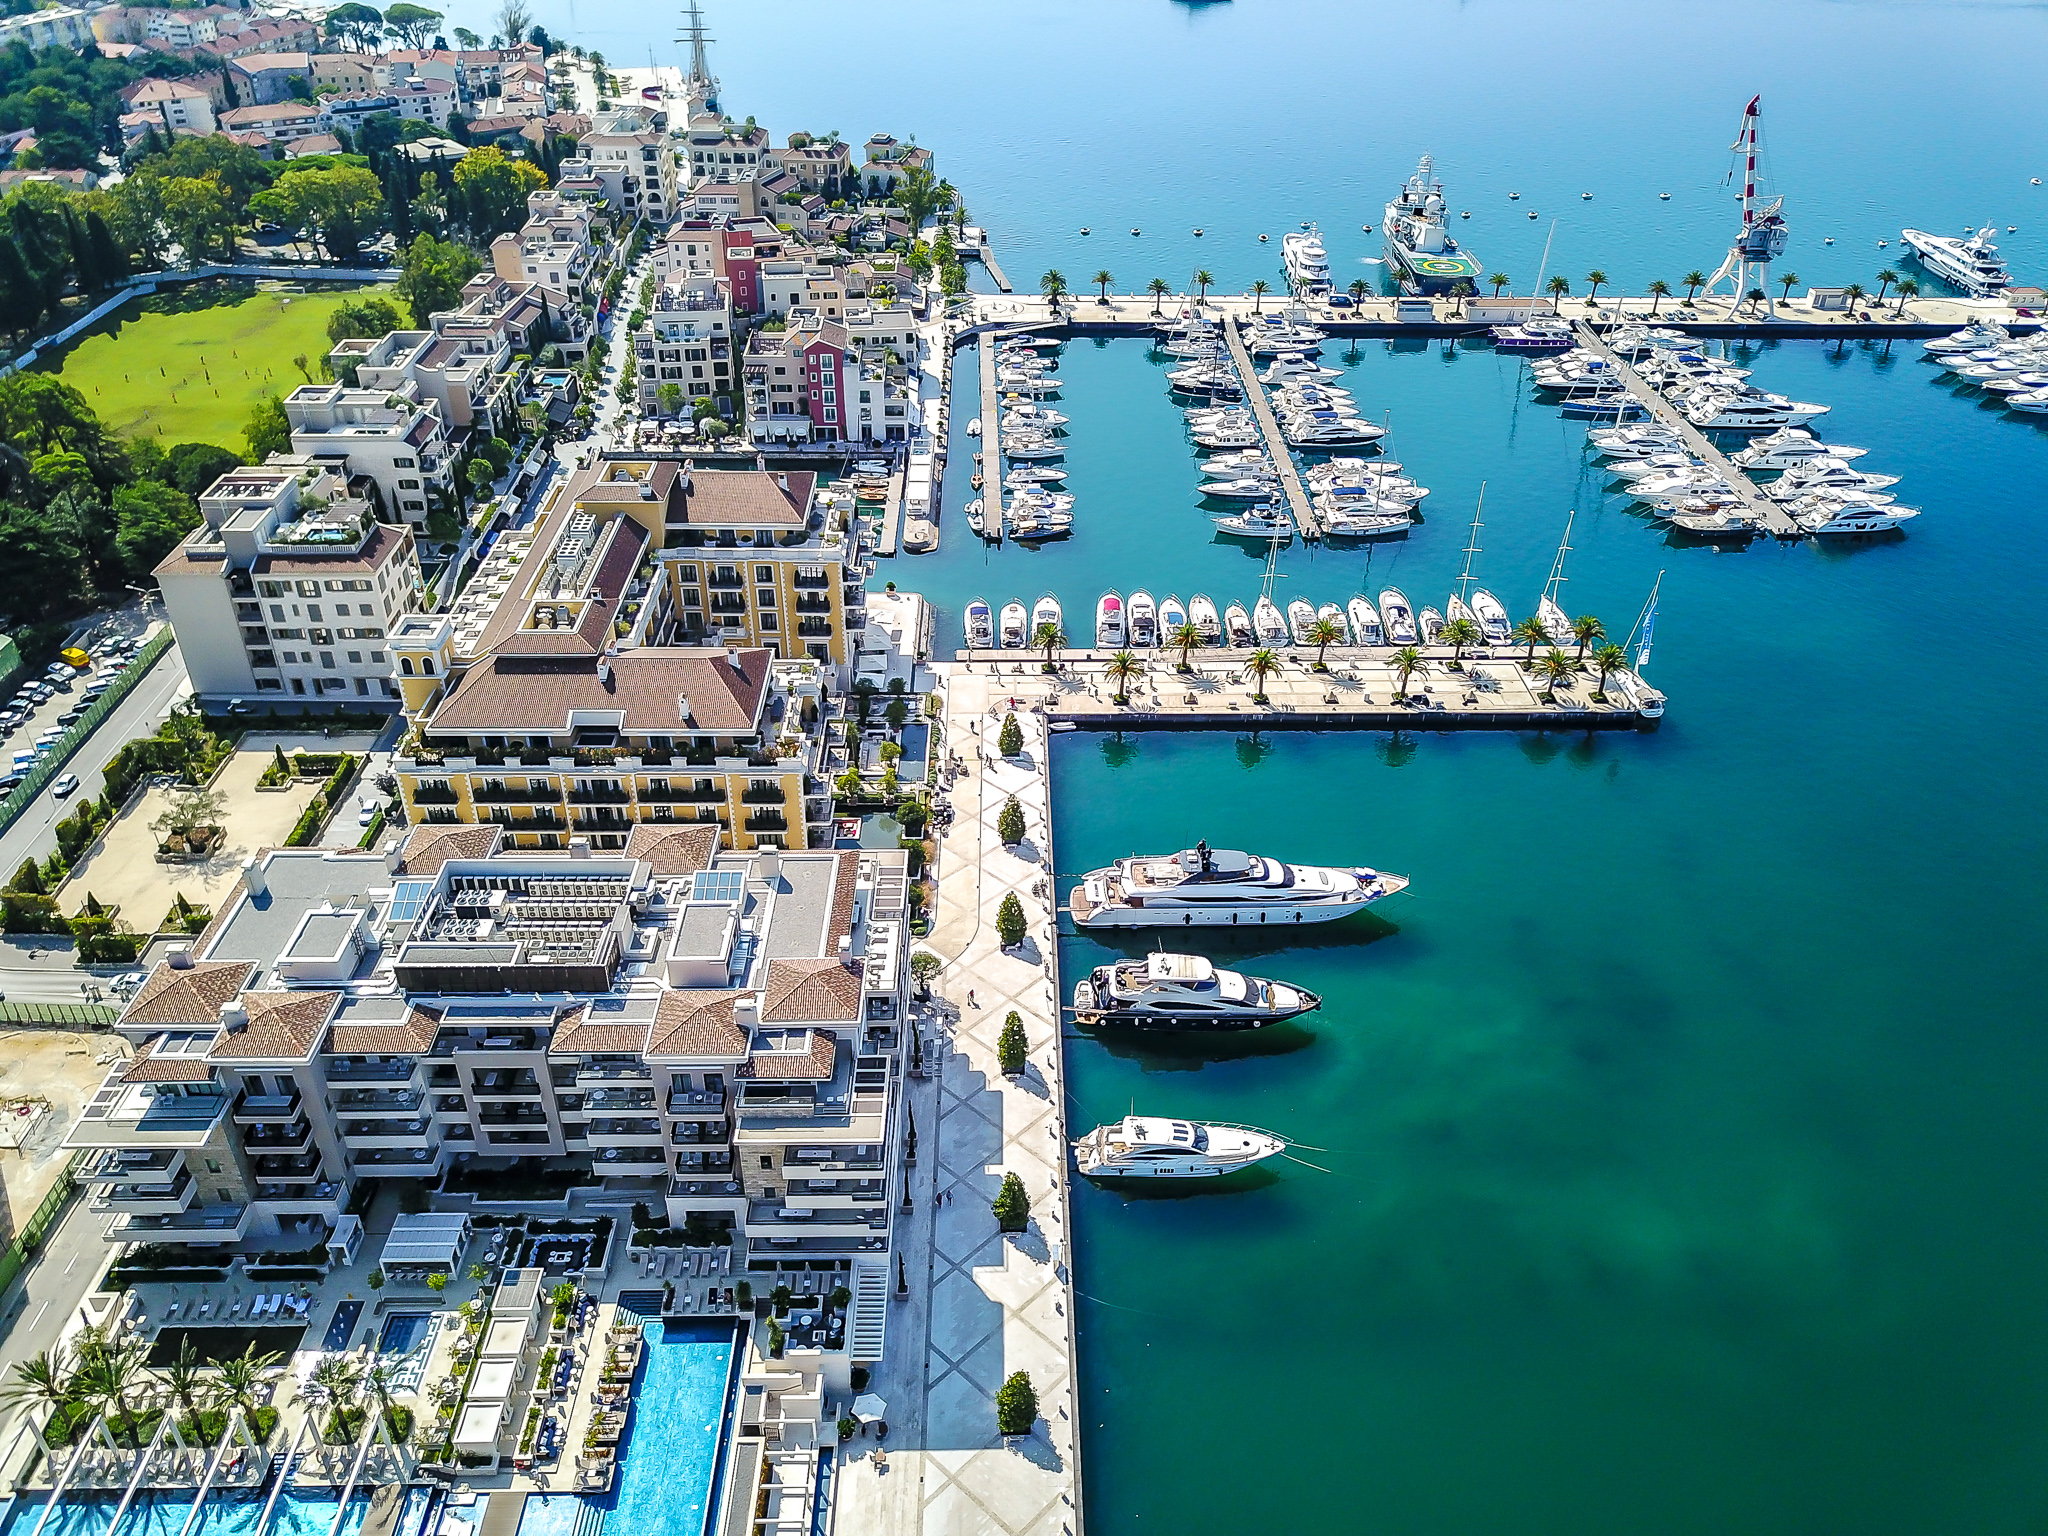 AERIAL OF THE HOTEL REGENT PORTO MONTENEGRO AND THE MARINA